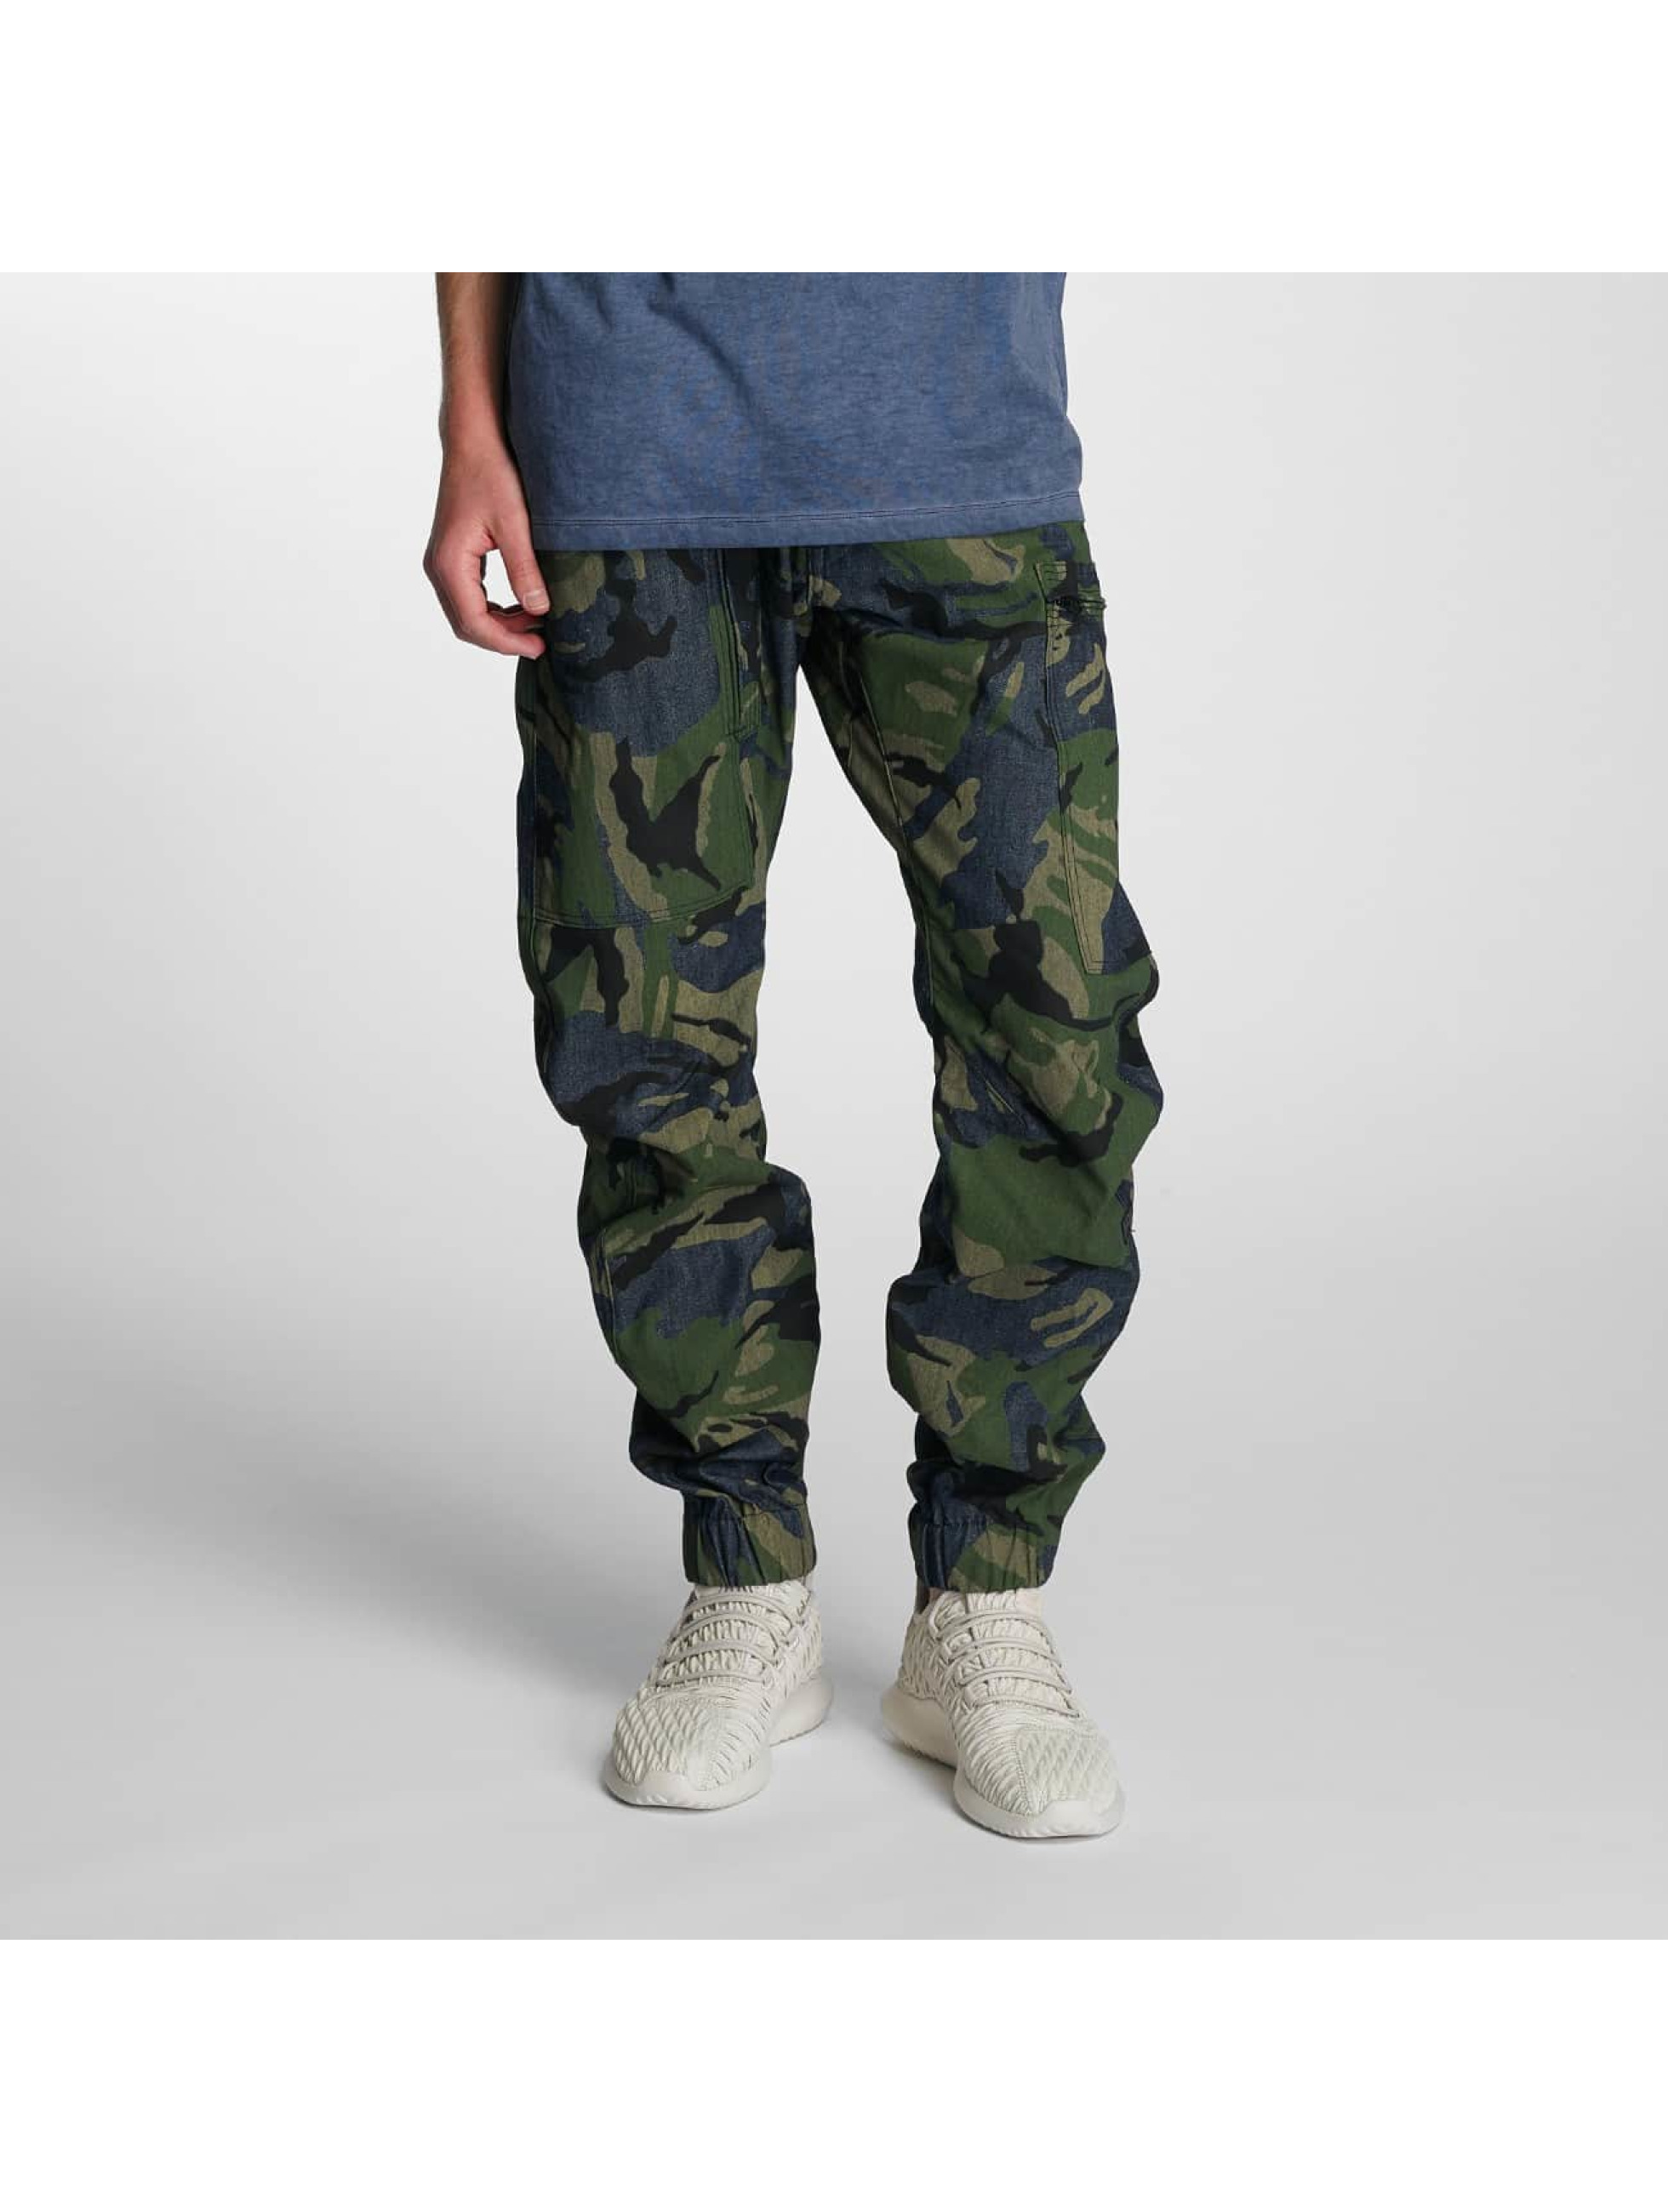 G-Star Männer Antifit 3D Cuffed Tapered Jeans in blau